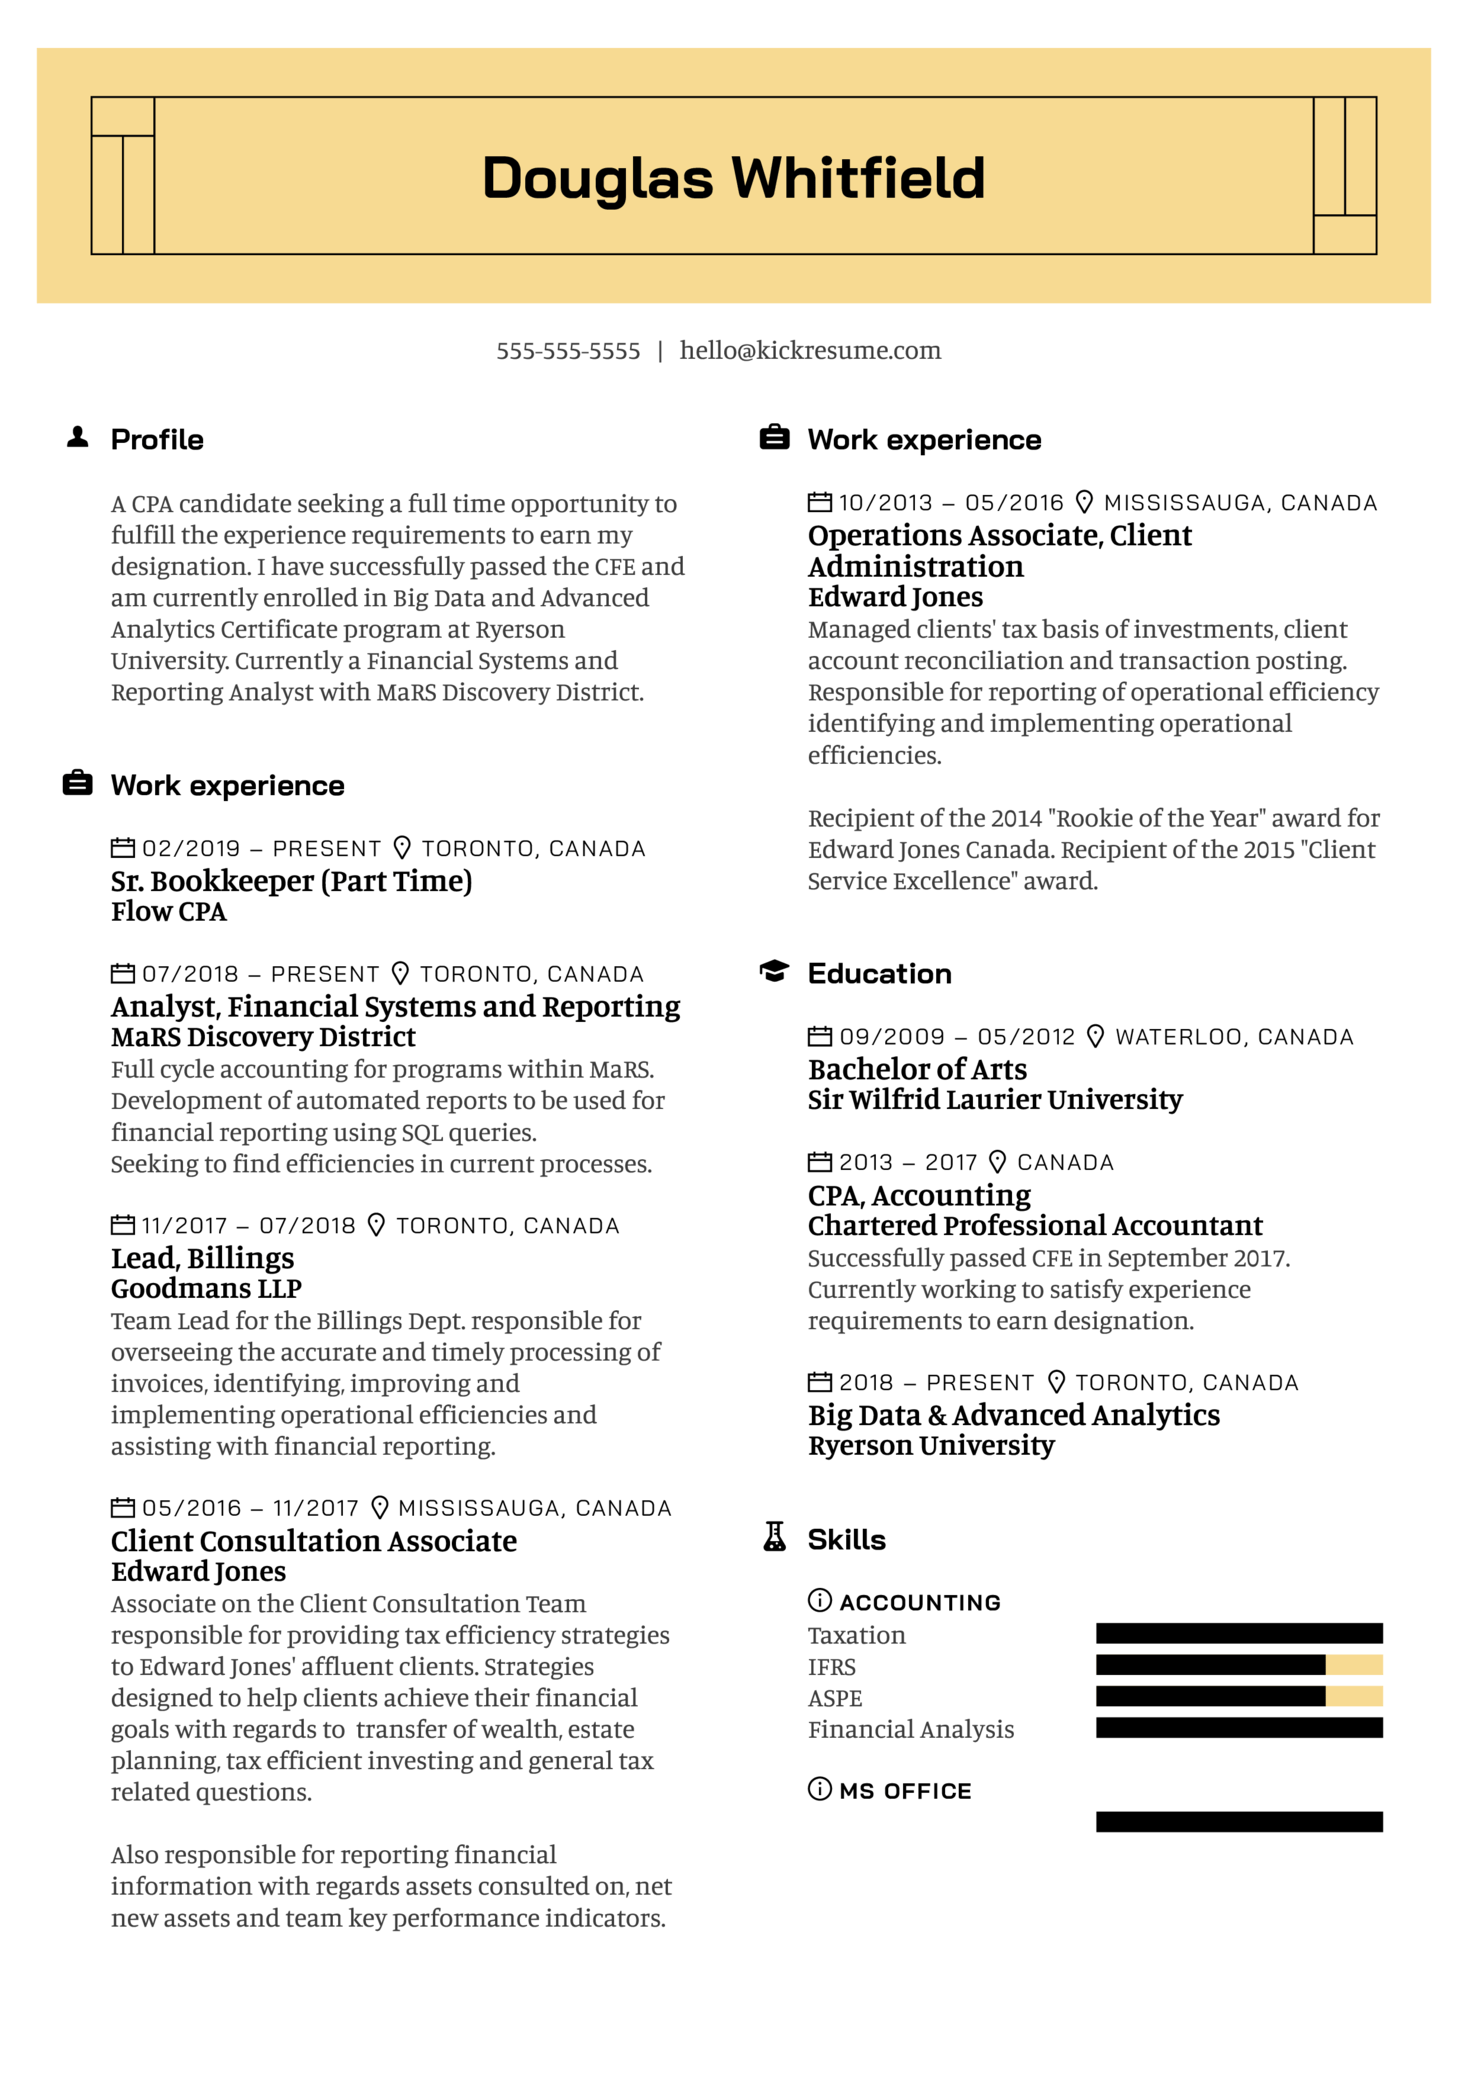 MaRS Discovery District Staff Accountant Resume Example (Teil 1)